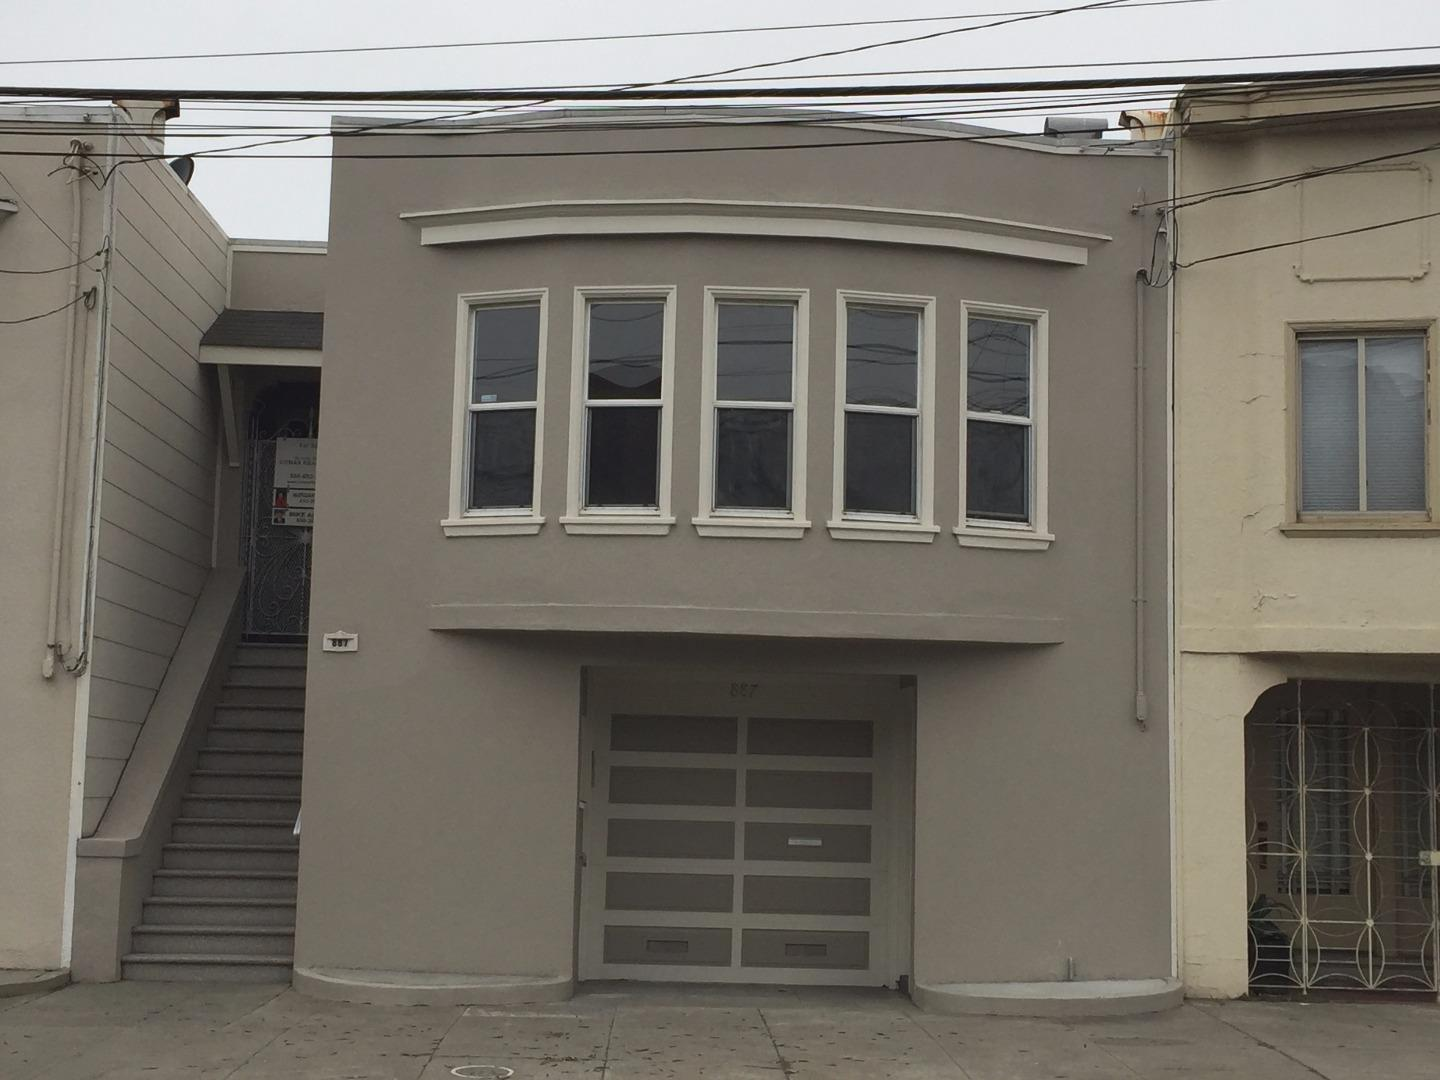 887 47th Avenue, SAN FRANCISCO, CA 94121